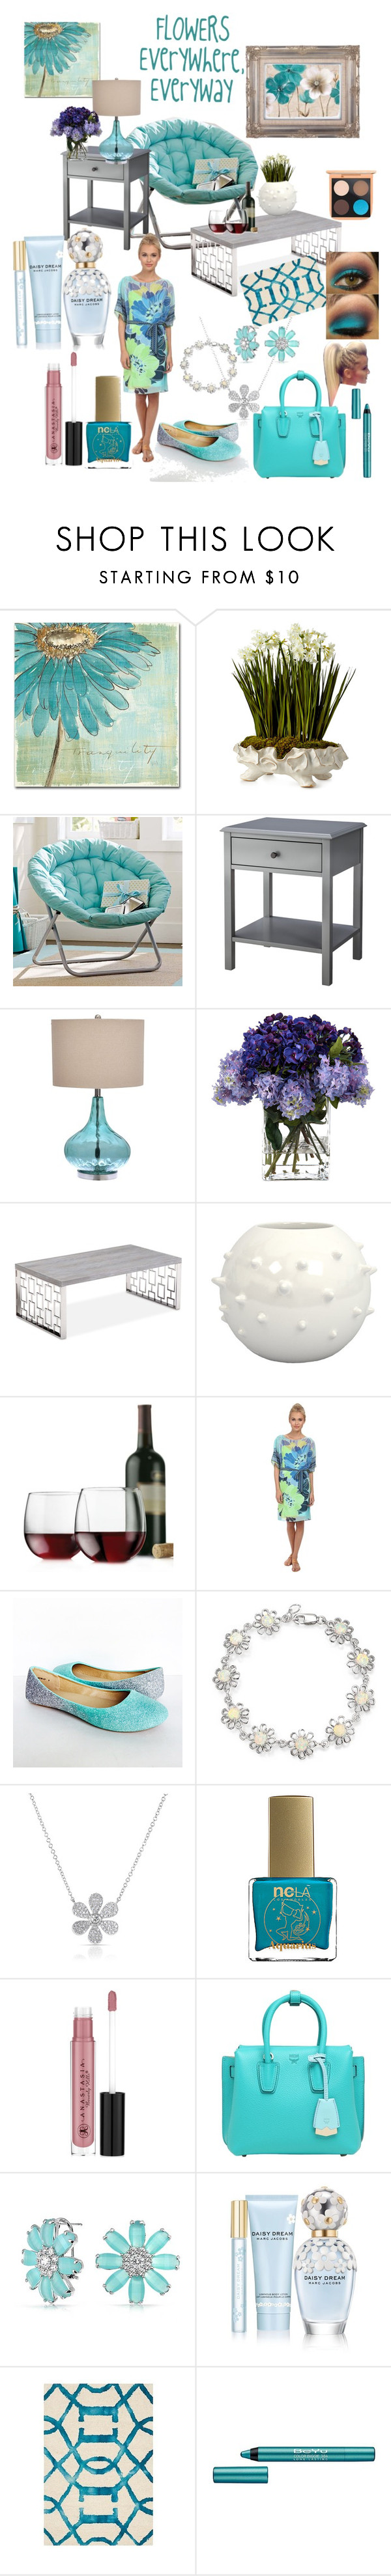 """""""Flowers are Everywhere"""" by snowflakeunique ❤ liked on Polyvore featuring interior, interiors, interior design, home, home decor, interior decorating, Trademark Fine Art, John-Richard, PBteen and Threshold"""